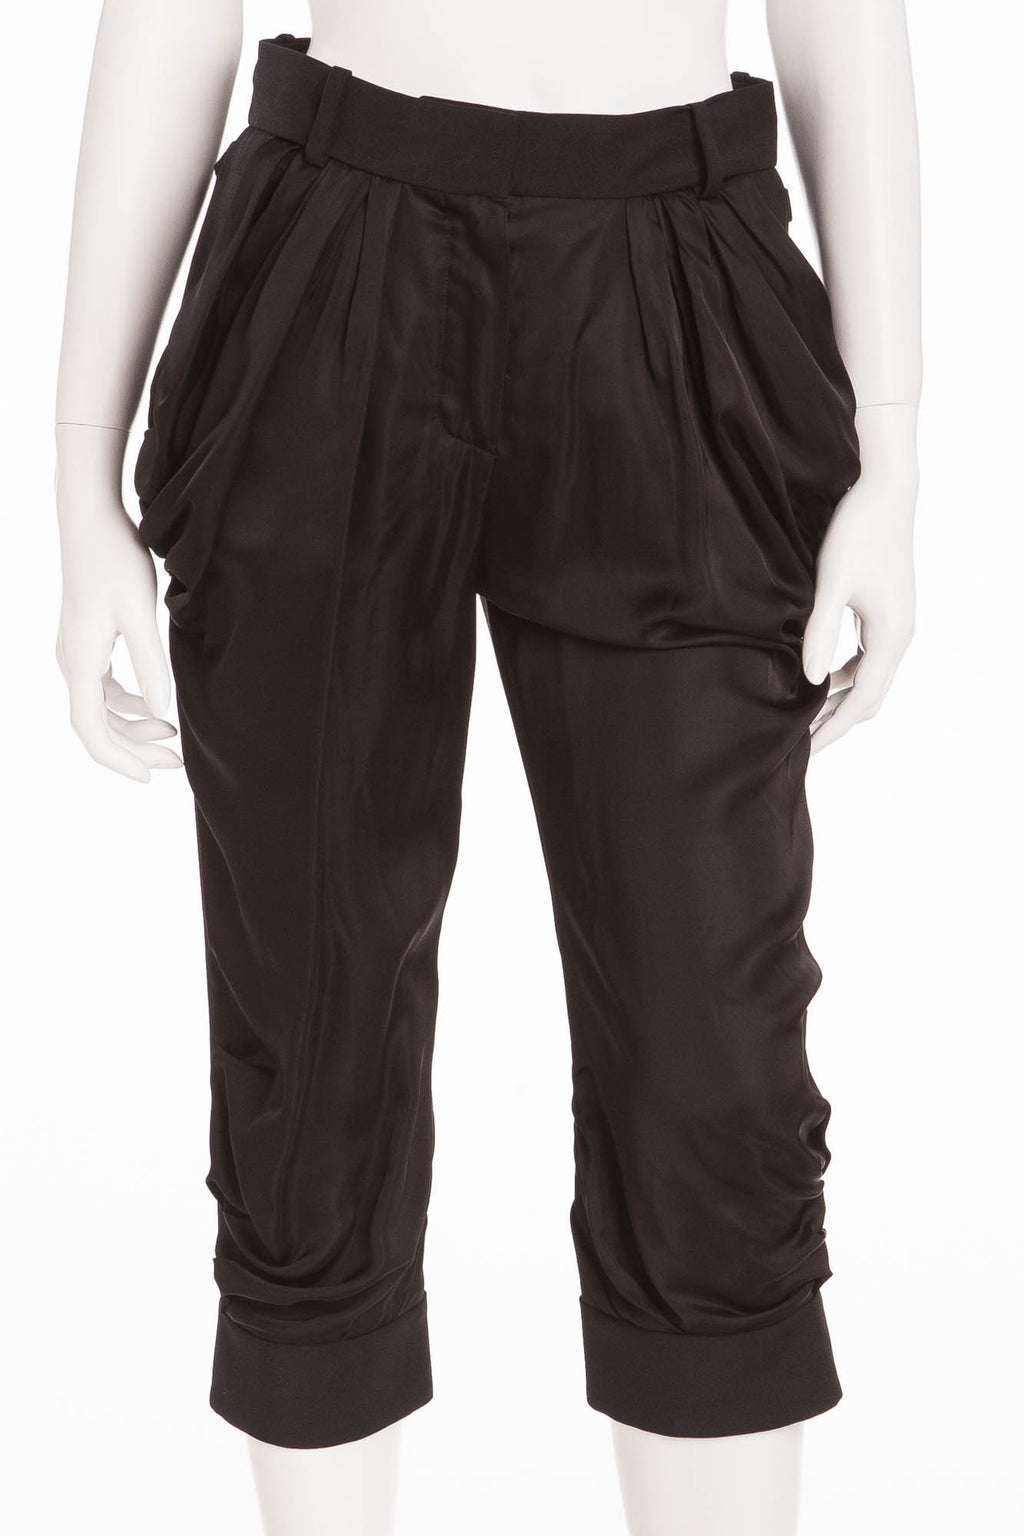 Louis Vuitton - Black Satin Front Capri Pants - FR 38